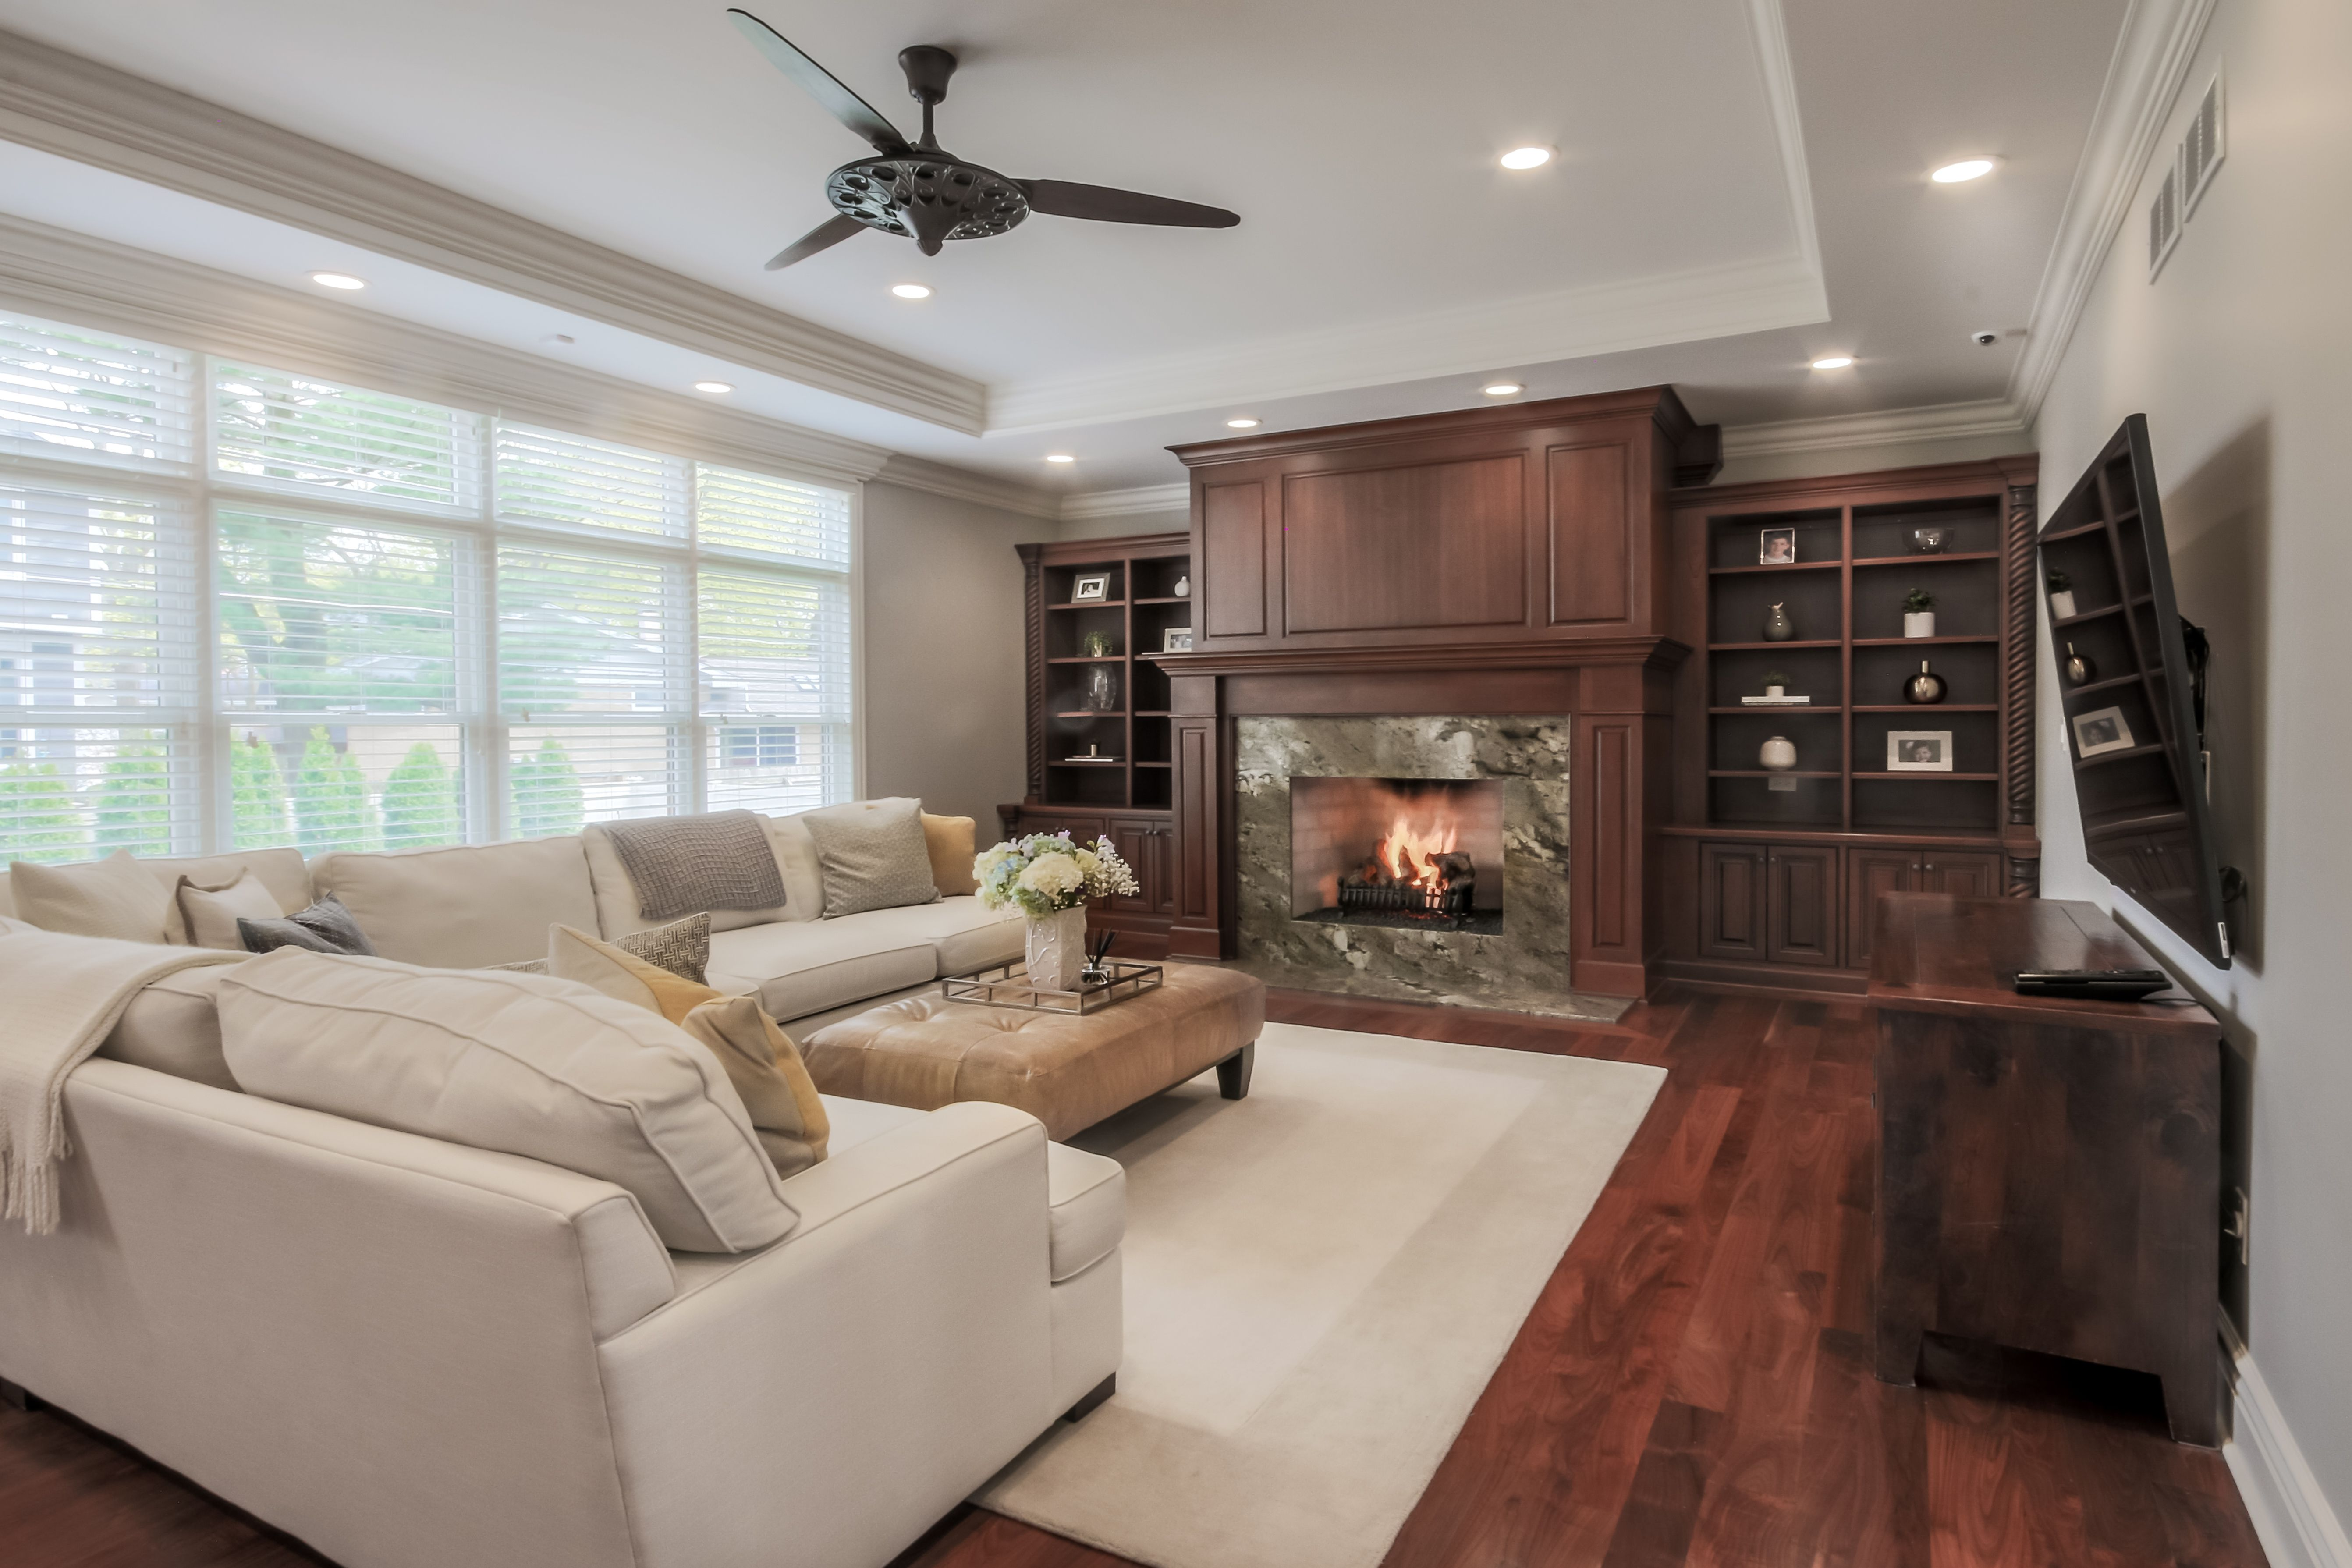 5 Best Room Designs Great Rooms Design Remodel Building A New Home